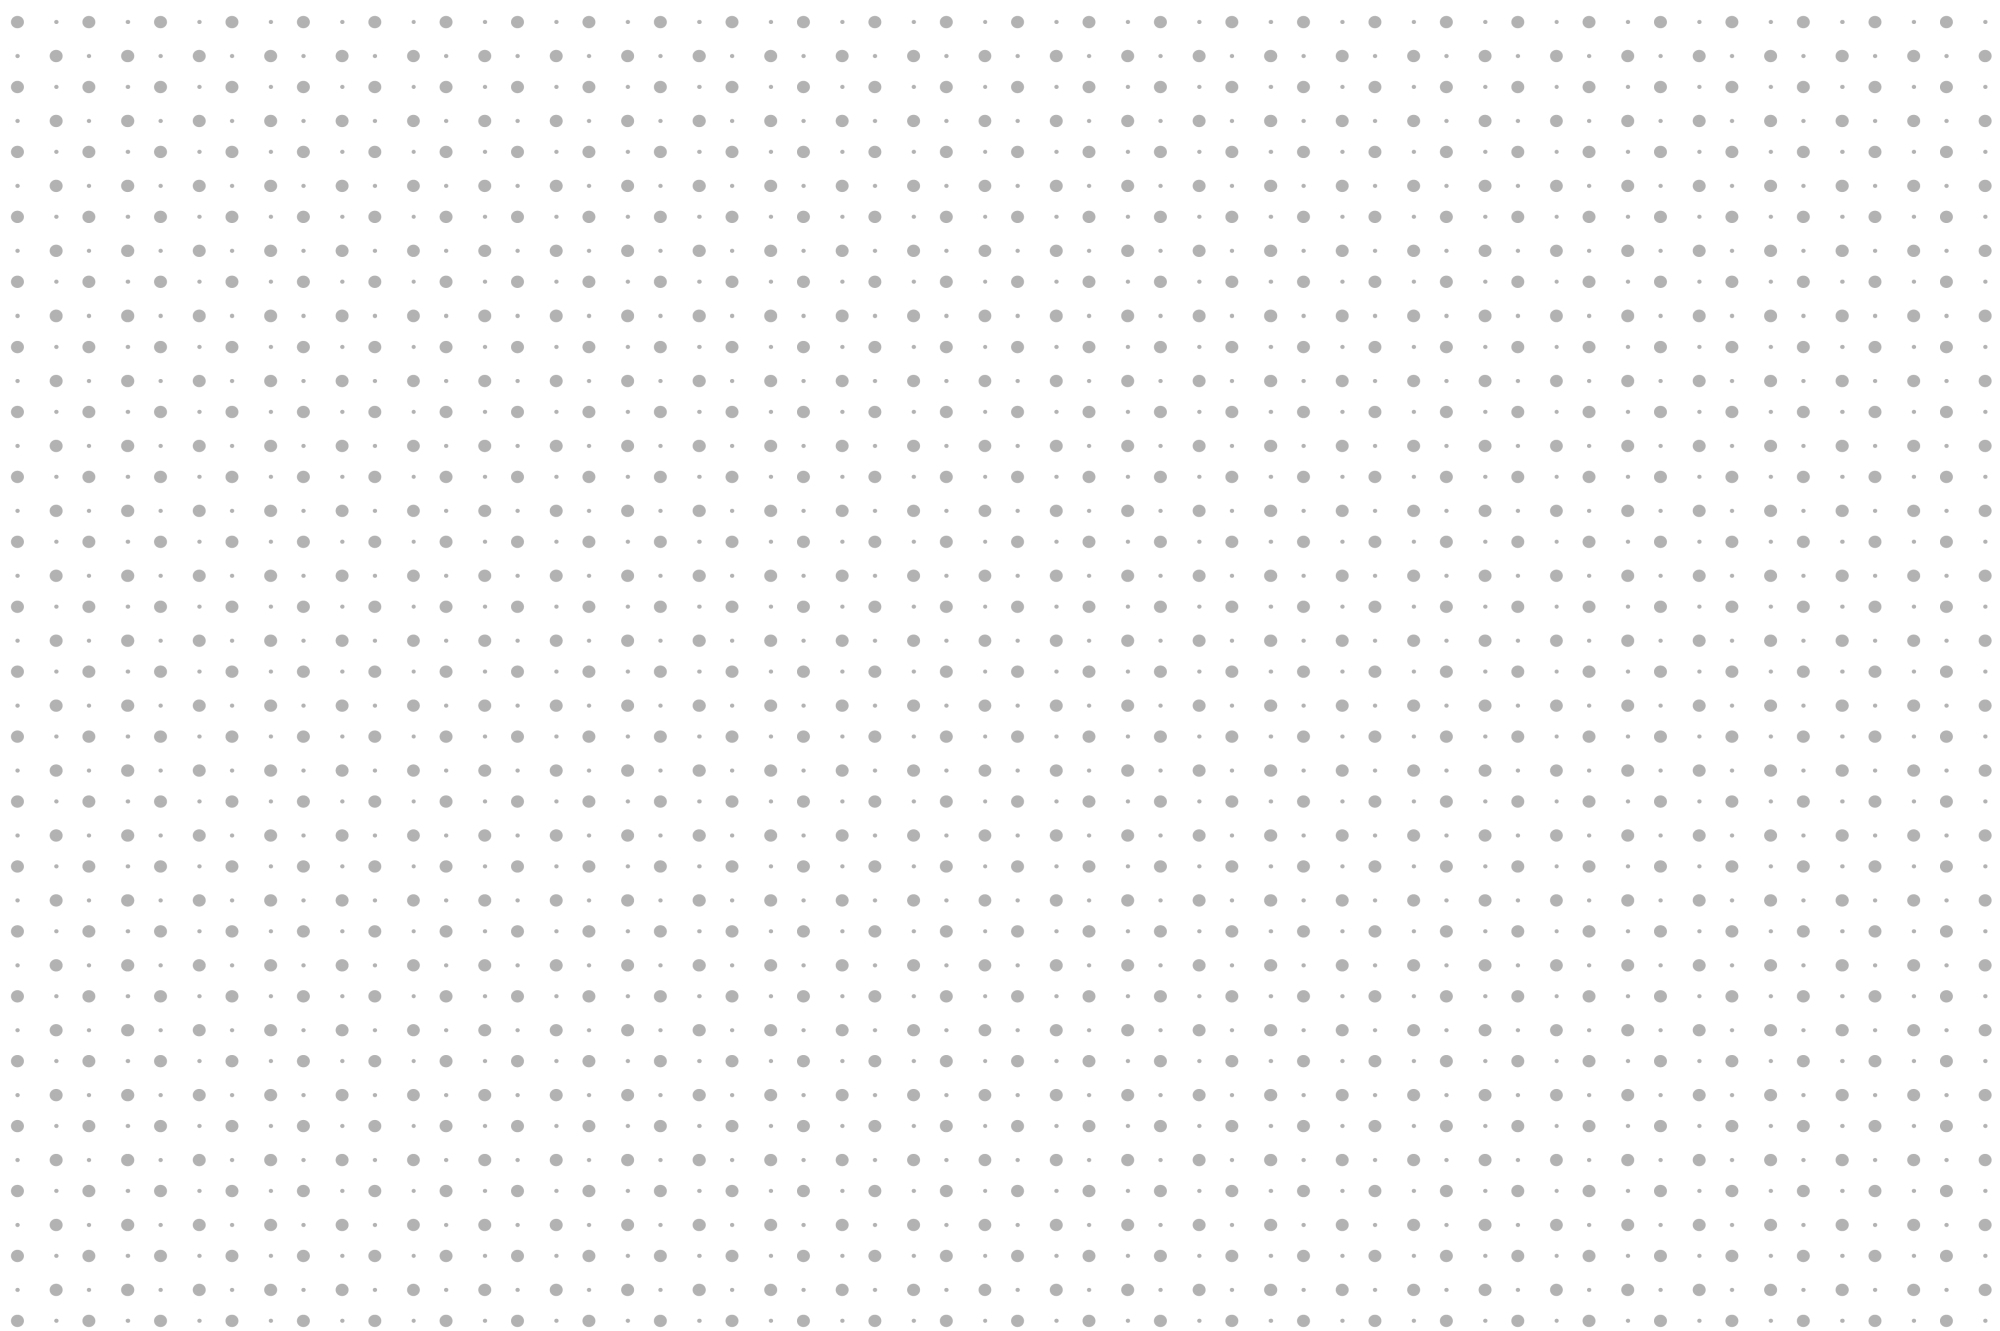 Dotted/striped seamless patterns. example image 4